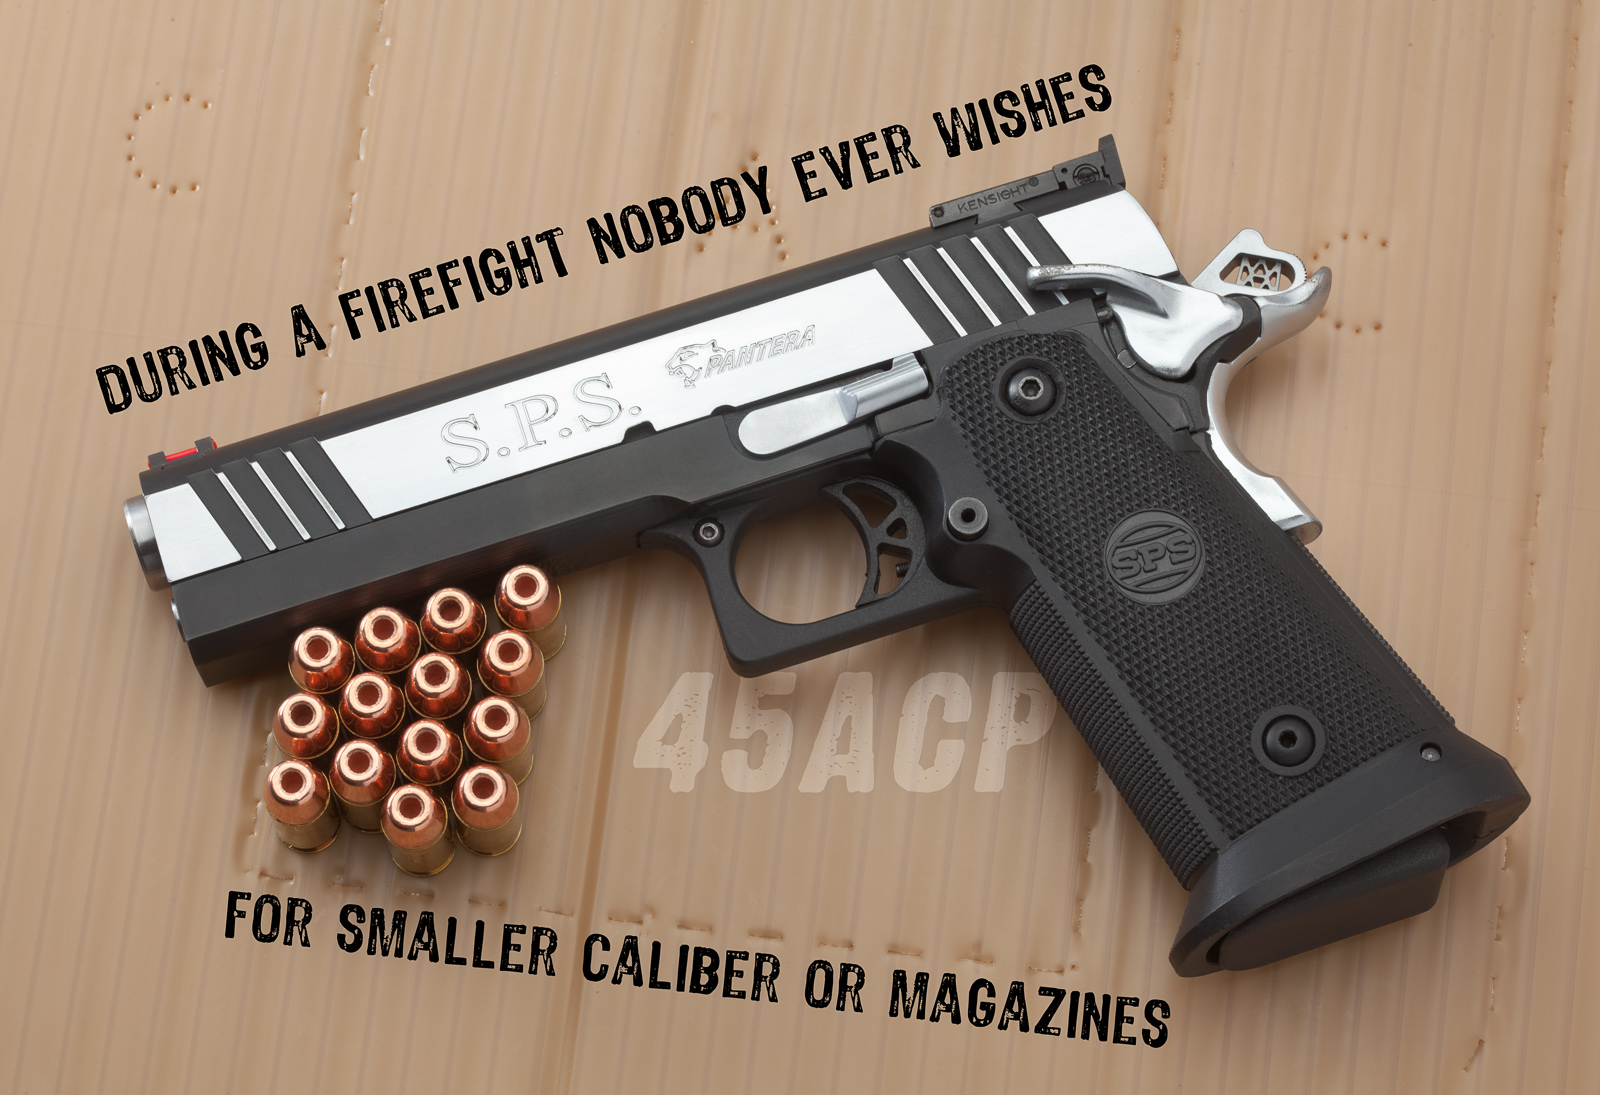 SPS_pantera_big_caliber_magazines_8046web